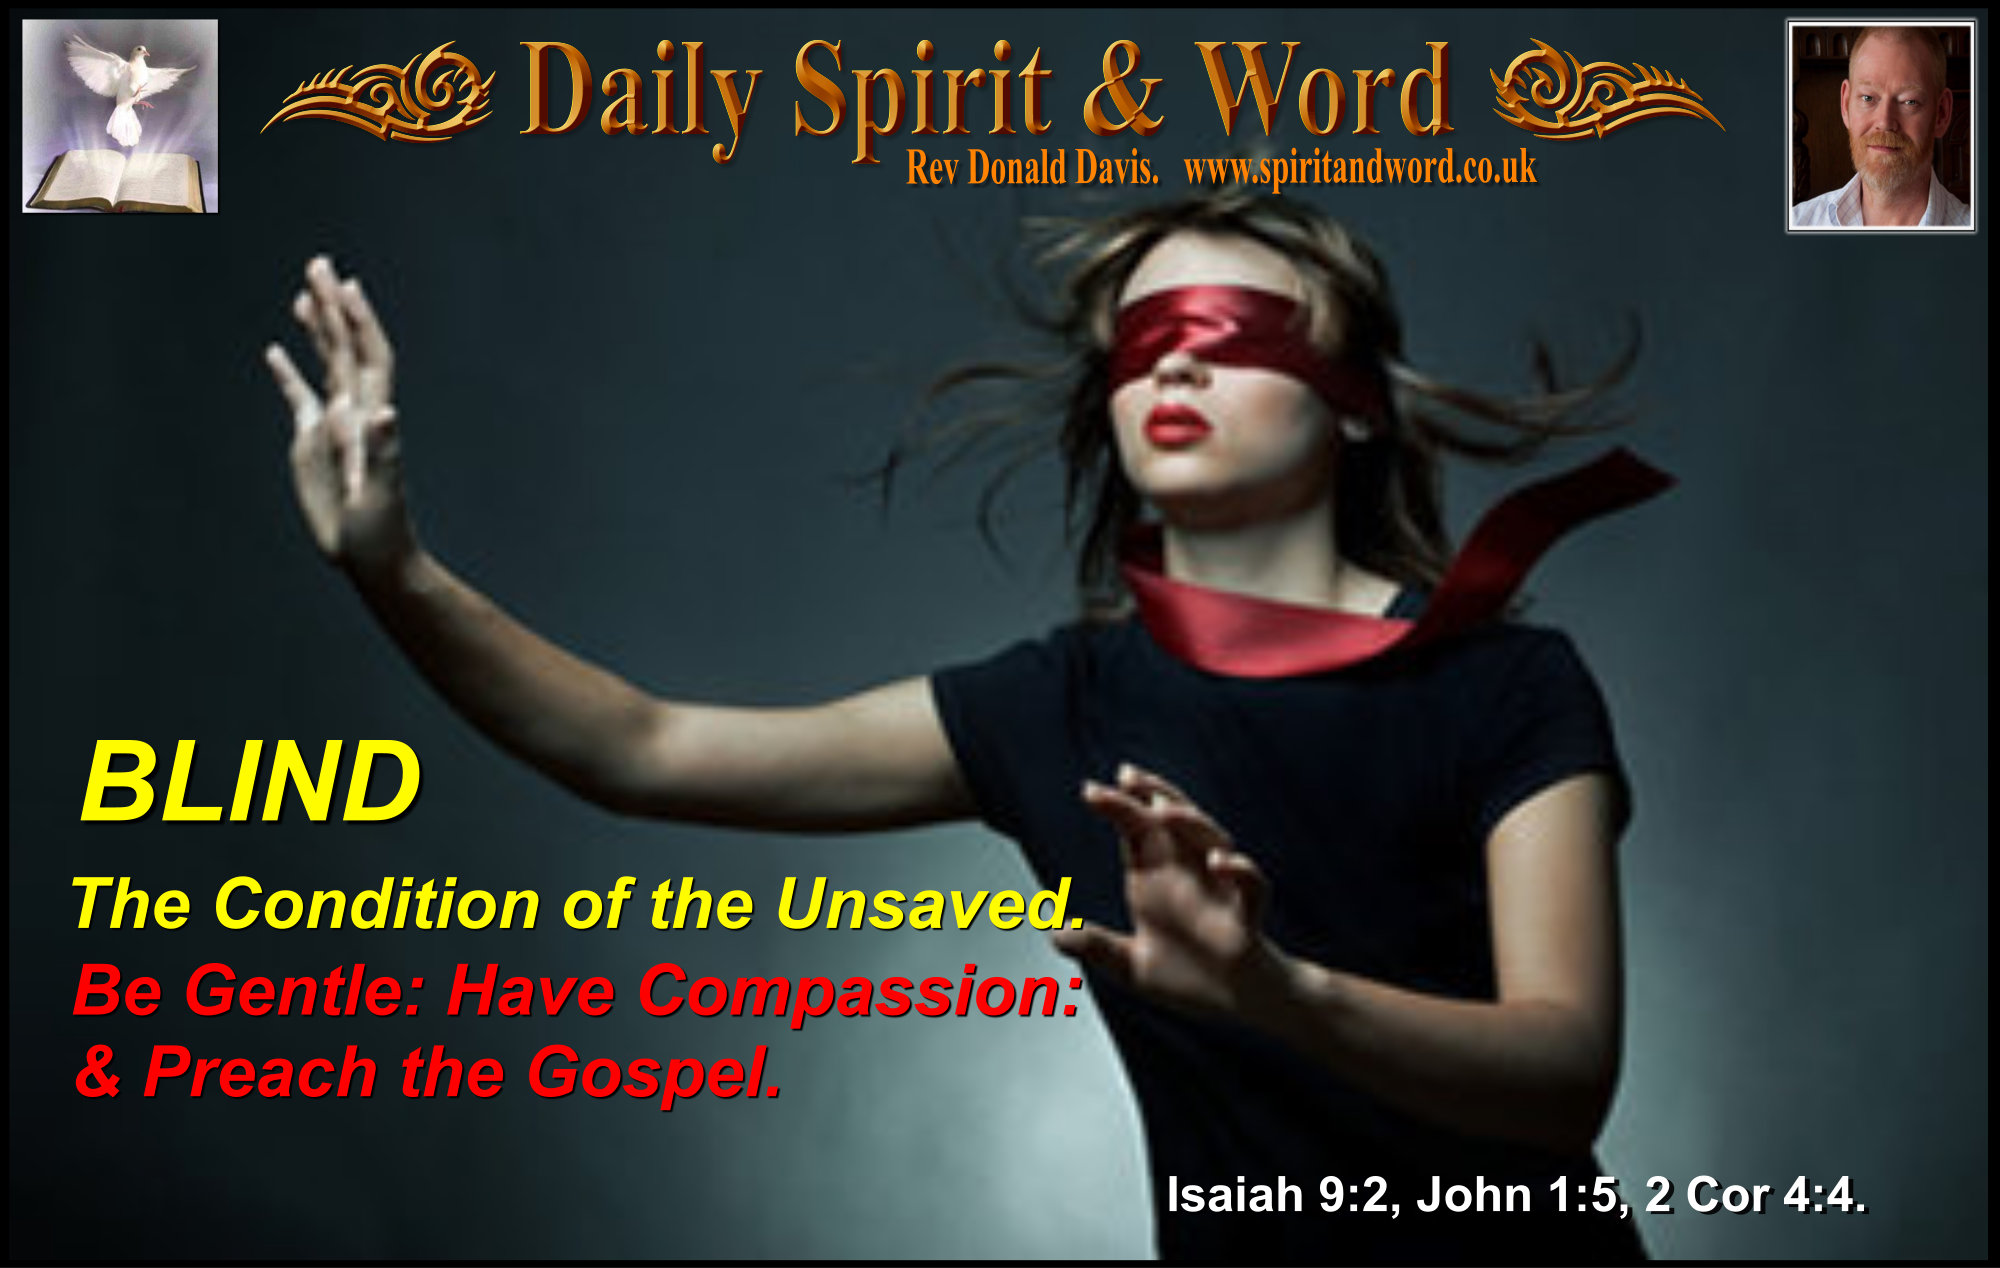 Compassion Compels the Believer to Share the Good News of Jesus Christ